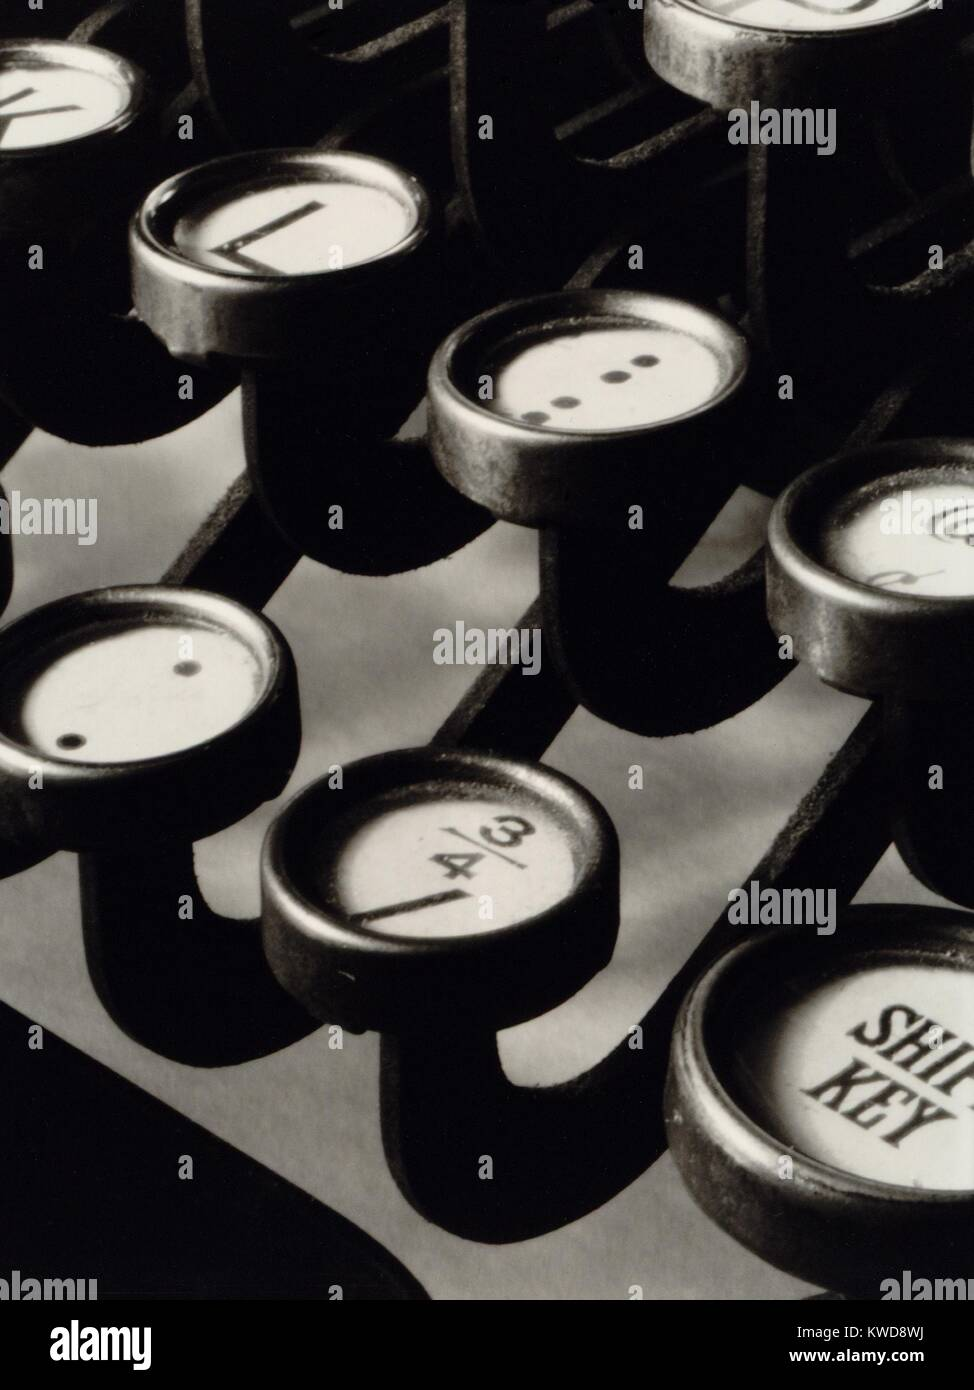 close up photograph of keys of a manual typewriter by ralph steiner rh alamy com Close-Up Photography Tumblr Up Close and Personal Photography